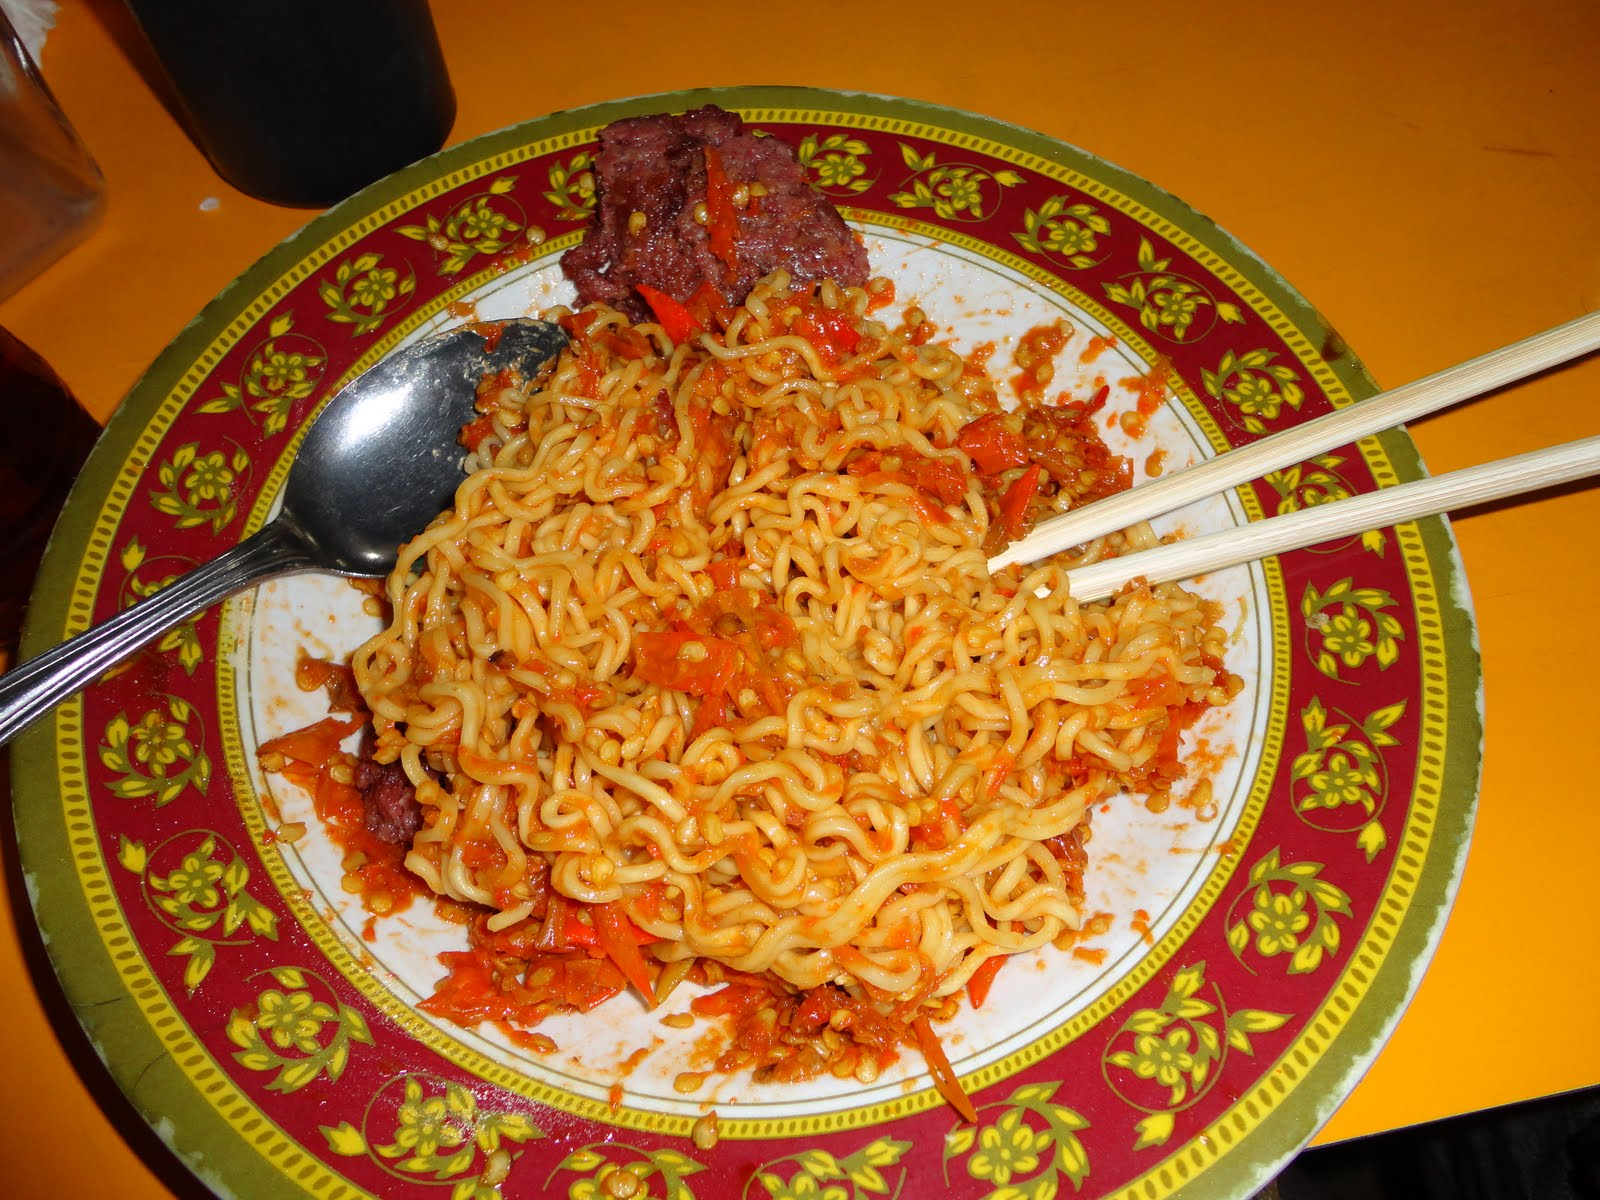 6 Restaurants in Jakarta that Specialize in Hot & Spicy Food